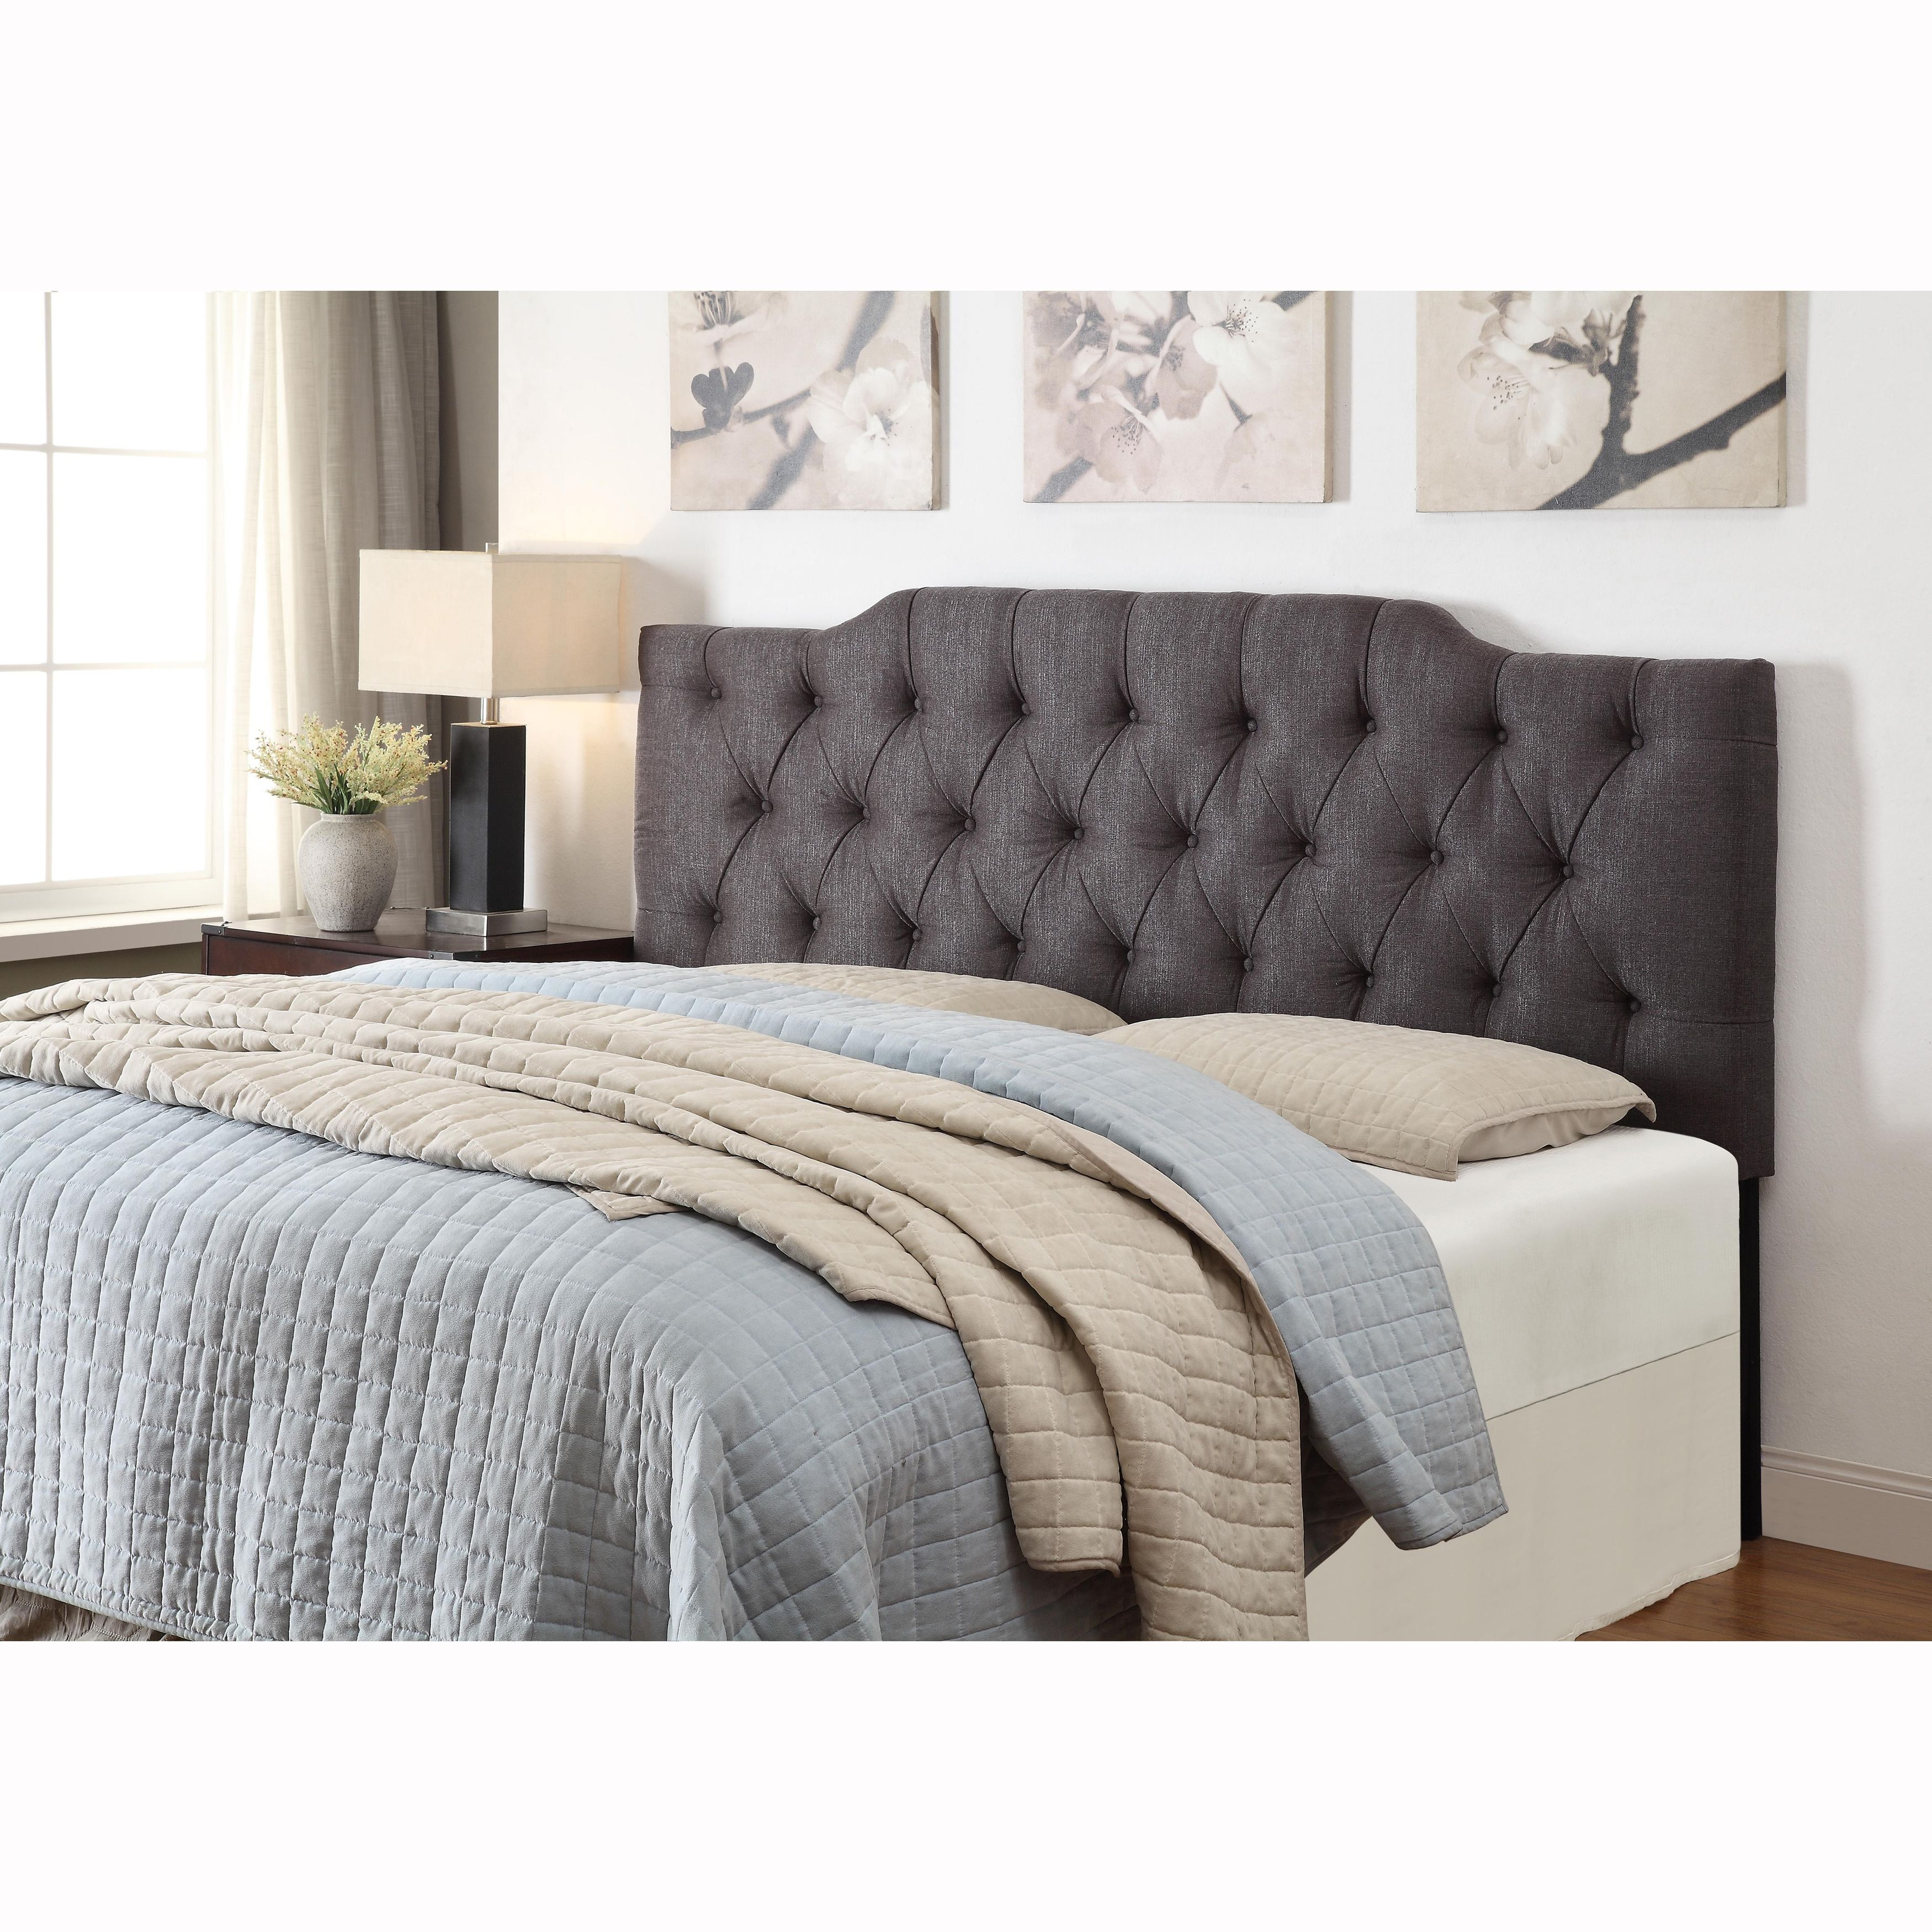 Charcoal Queen/Full Size Tufted Upholstered Headboard